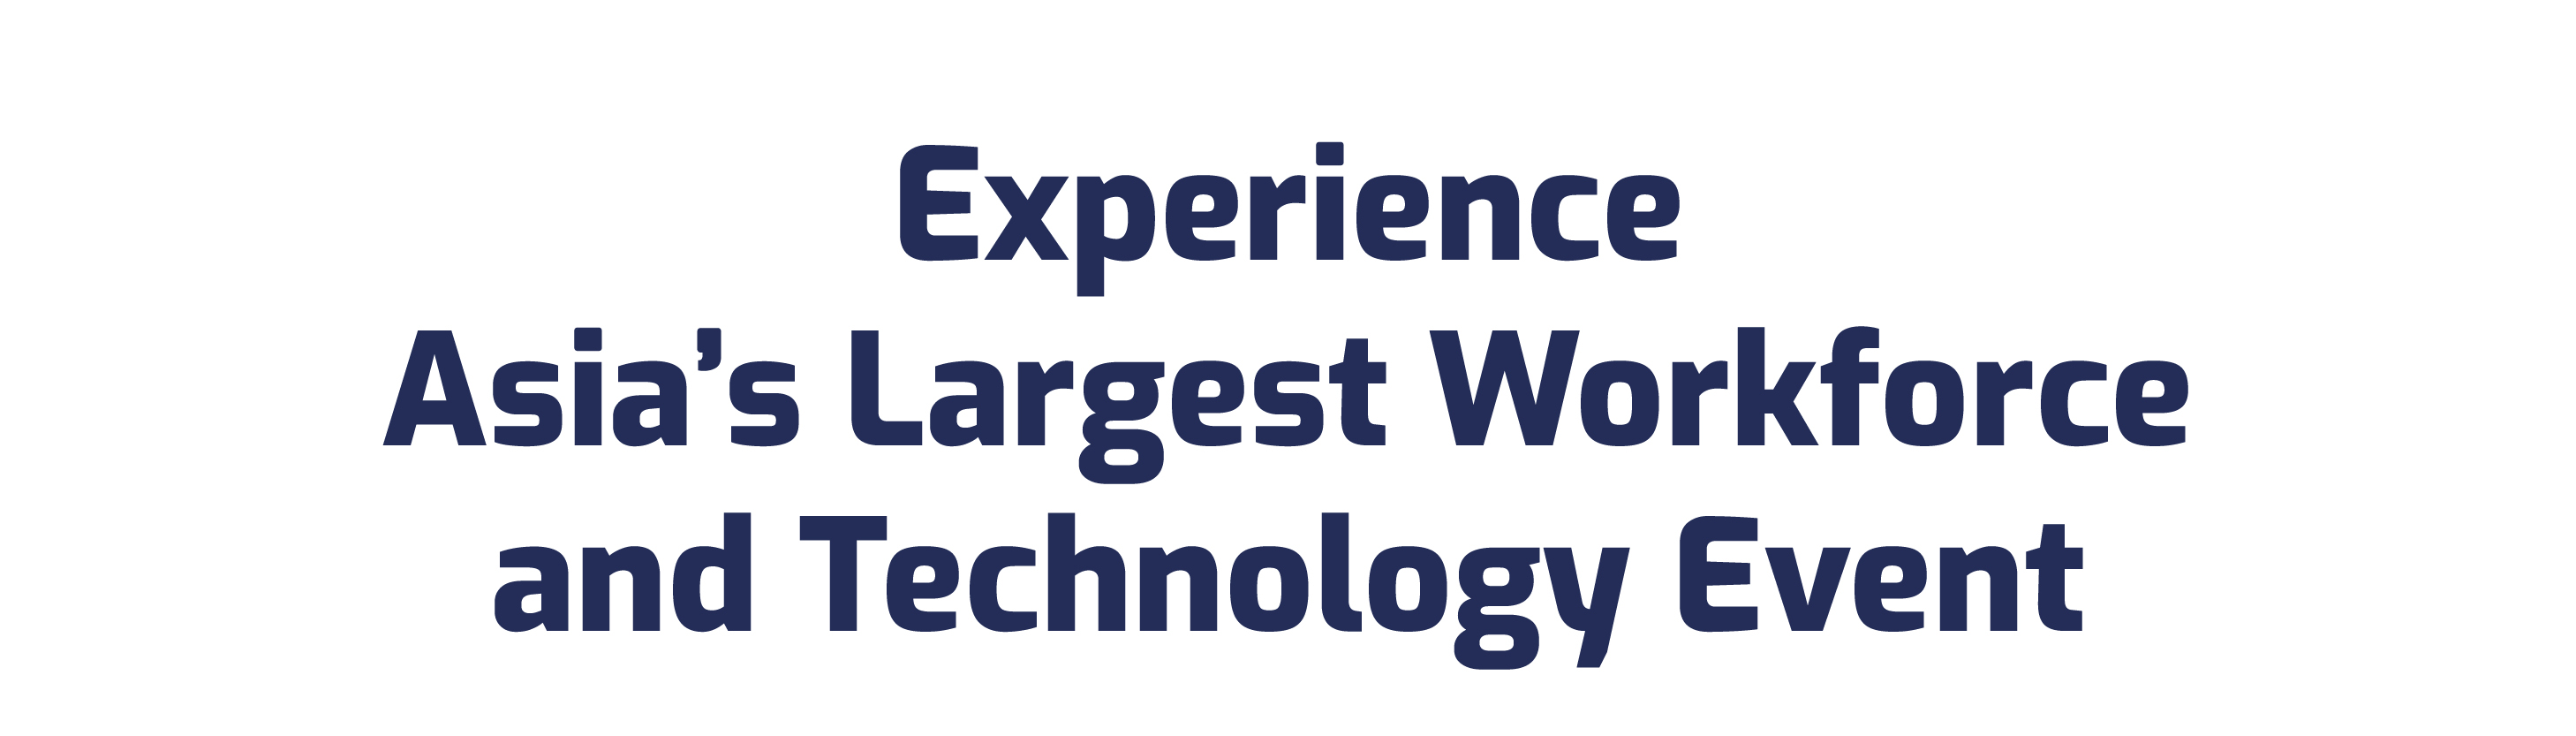 FESTIVAL HIGHLIGHTS_MAILING_700x200_Experience Asia's Largest Workforce and Technology Event